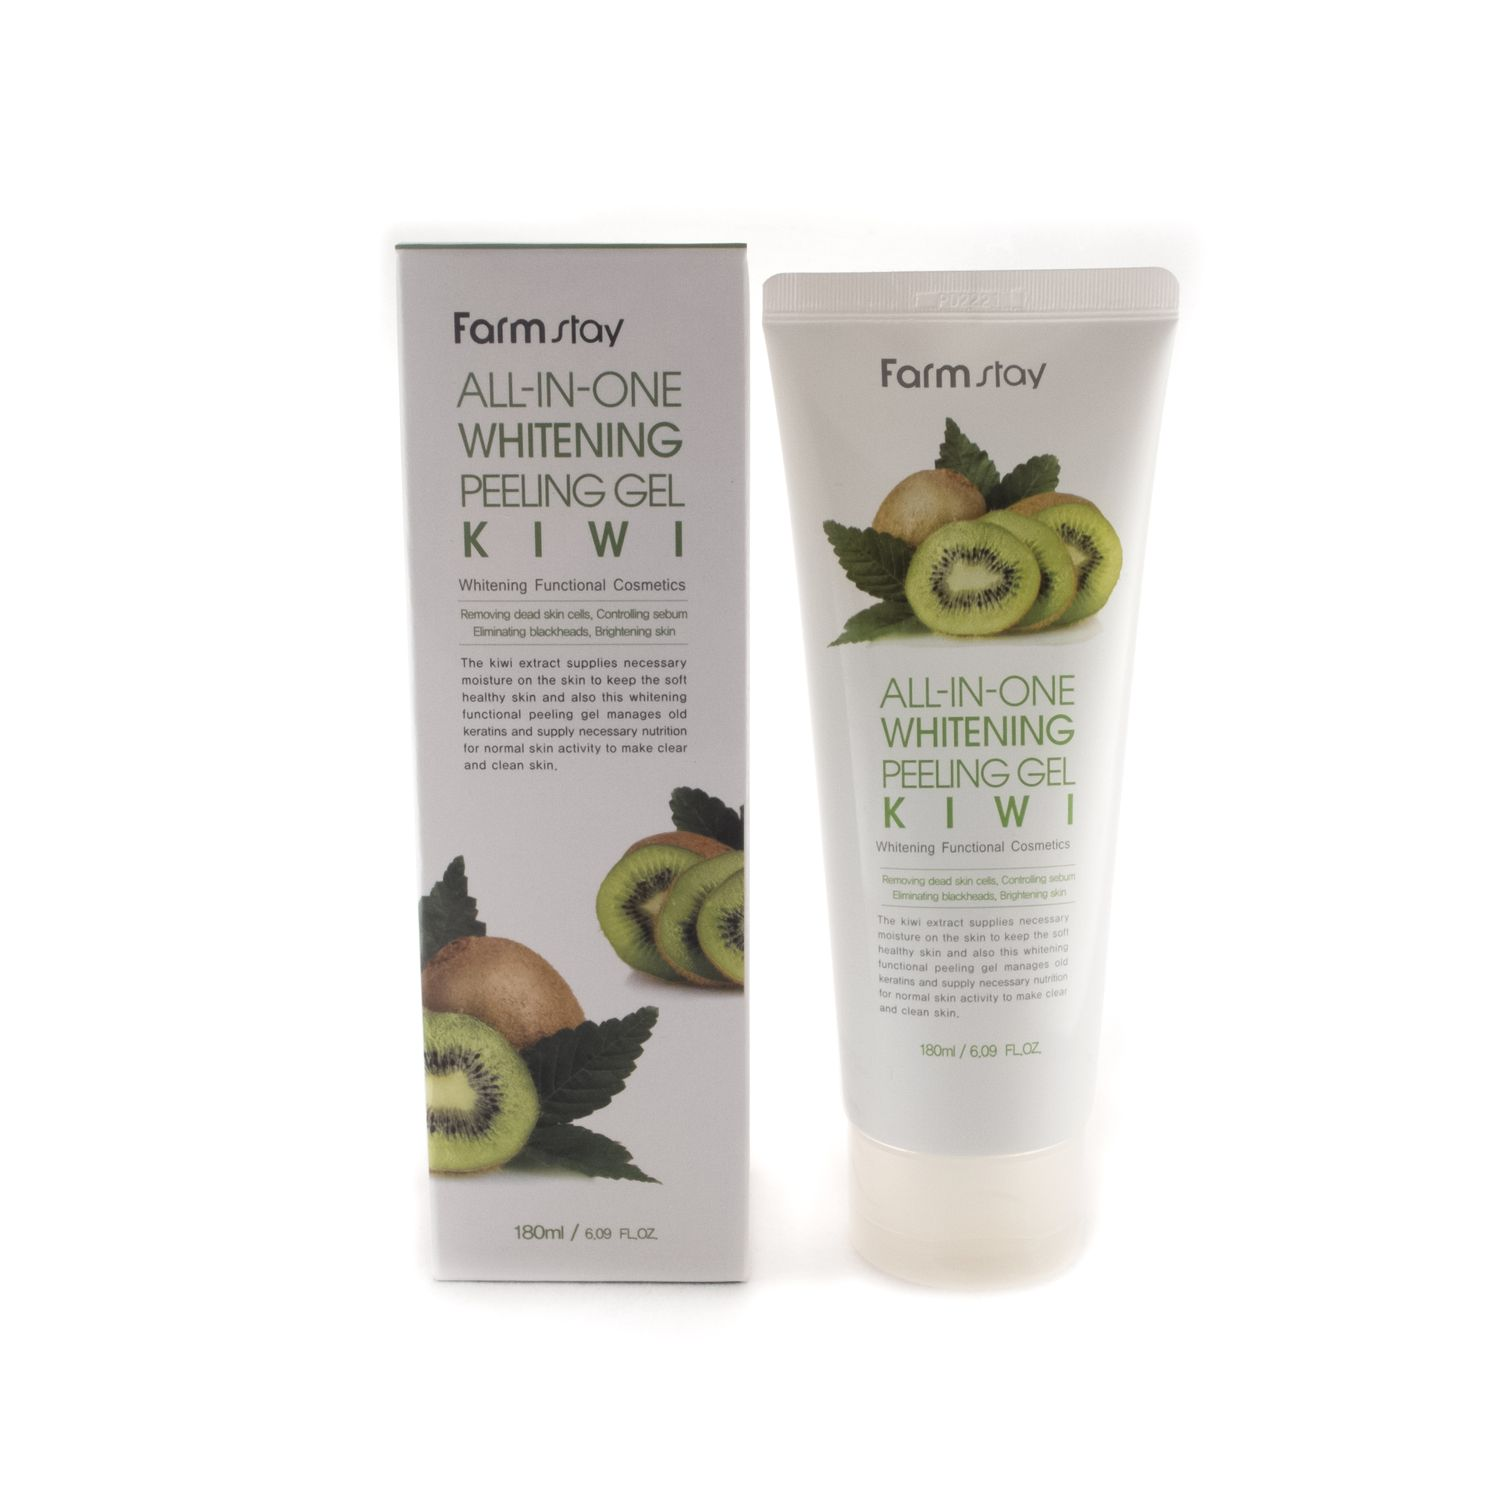 Пилинг-скатка с экстрактом киви FarmStay All-In-One Whitening Peeling Gel Kiwi, 180мл пилинг скатка для ног bioaqua